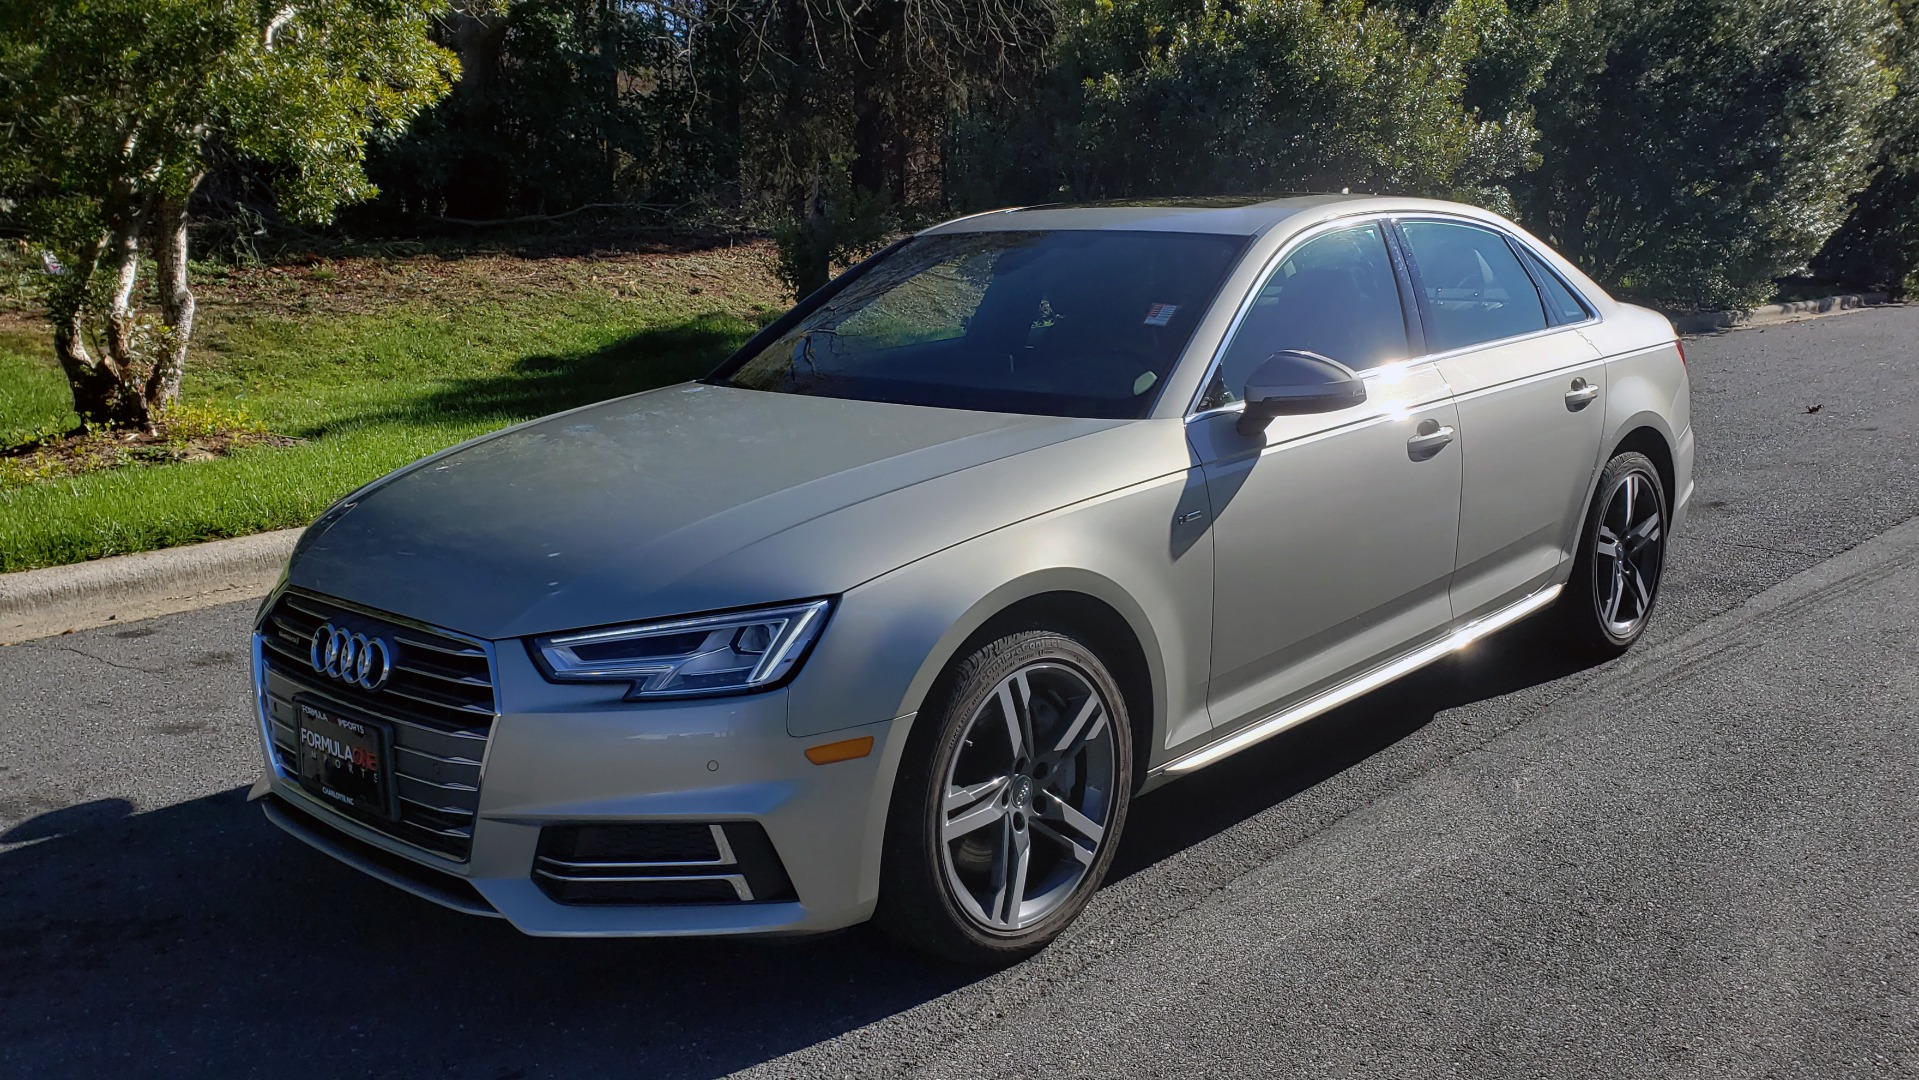 Used 2017 Audi A4 PREMIUM PLUS / TECH PKG / B&O SND / S-LINE / NAV / REARVIEW for sale Sold at Formula Imports in Charlotte NC 28227 1